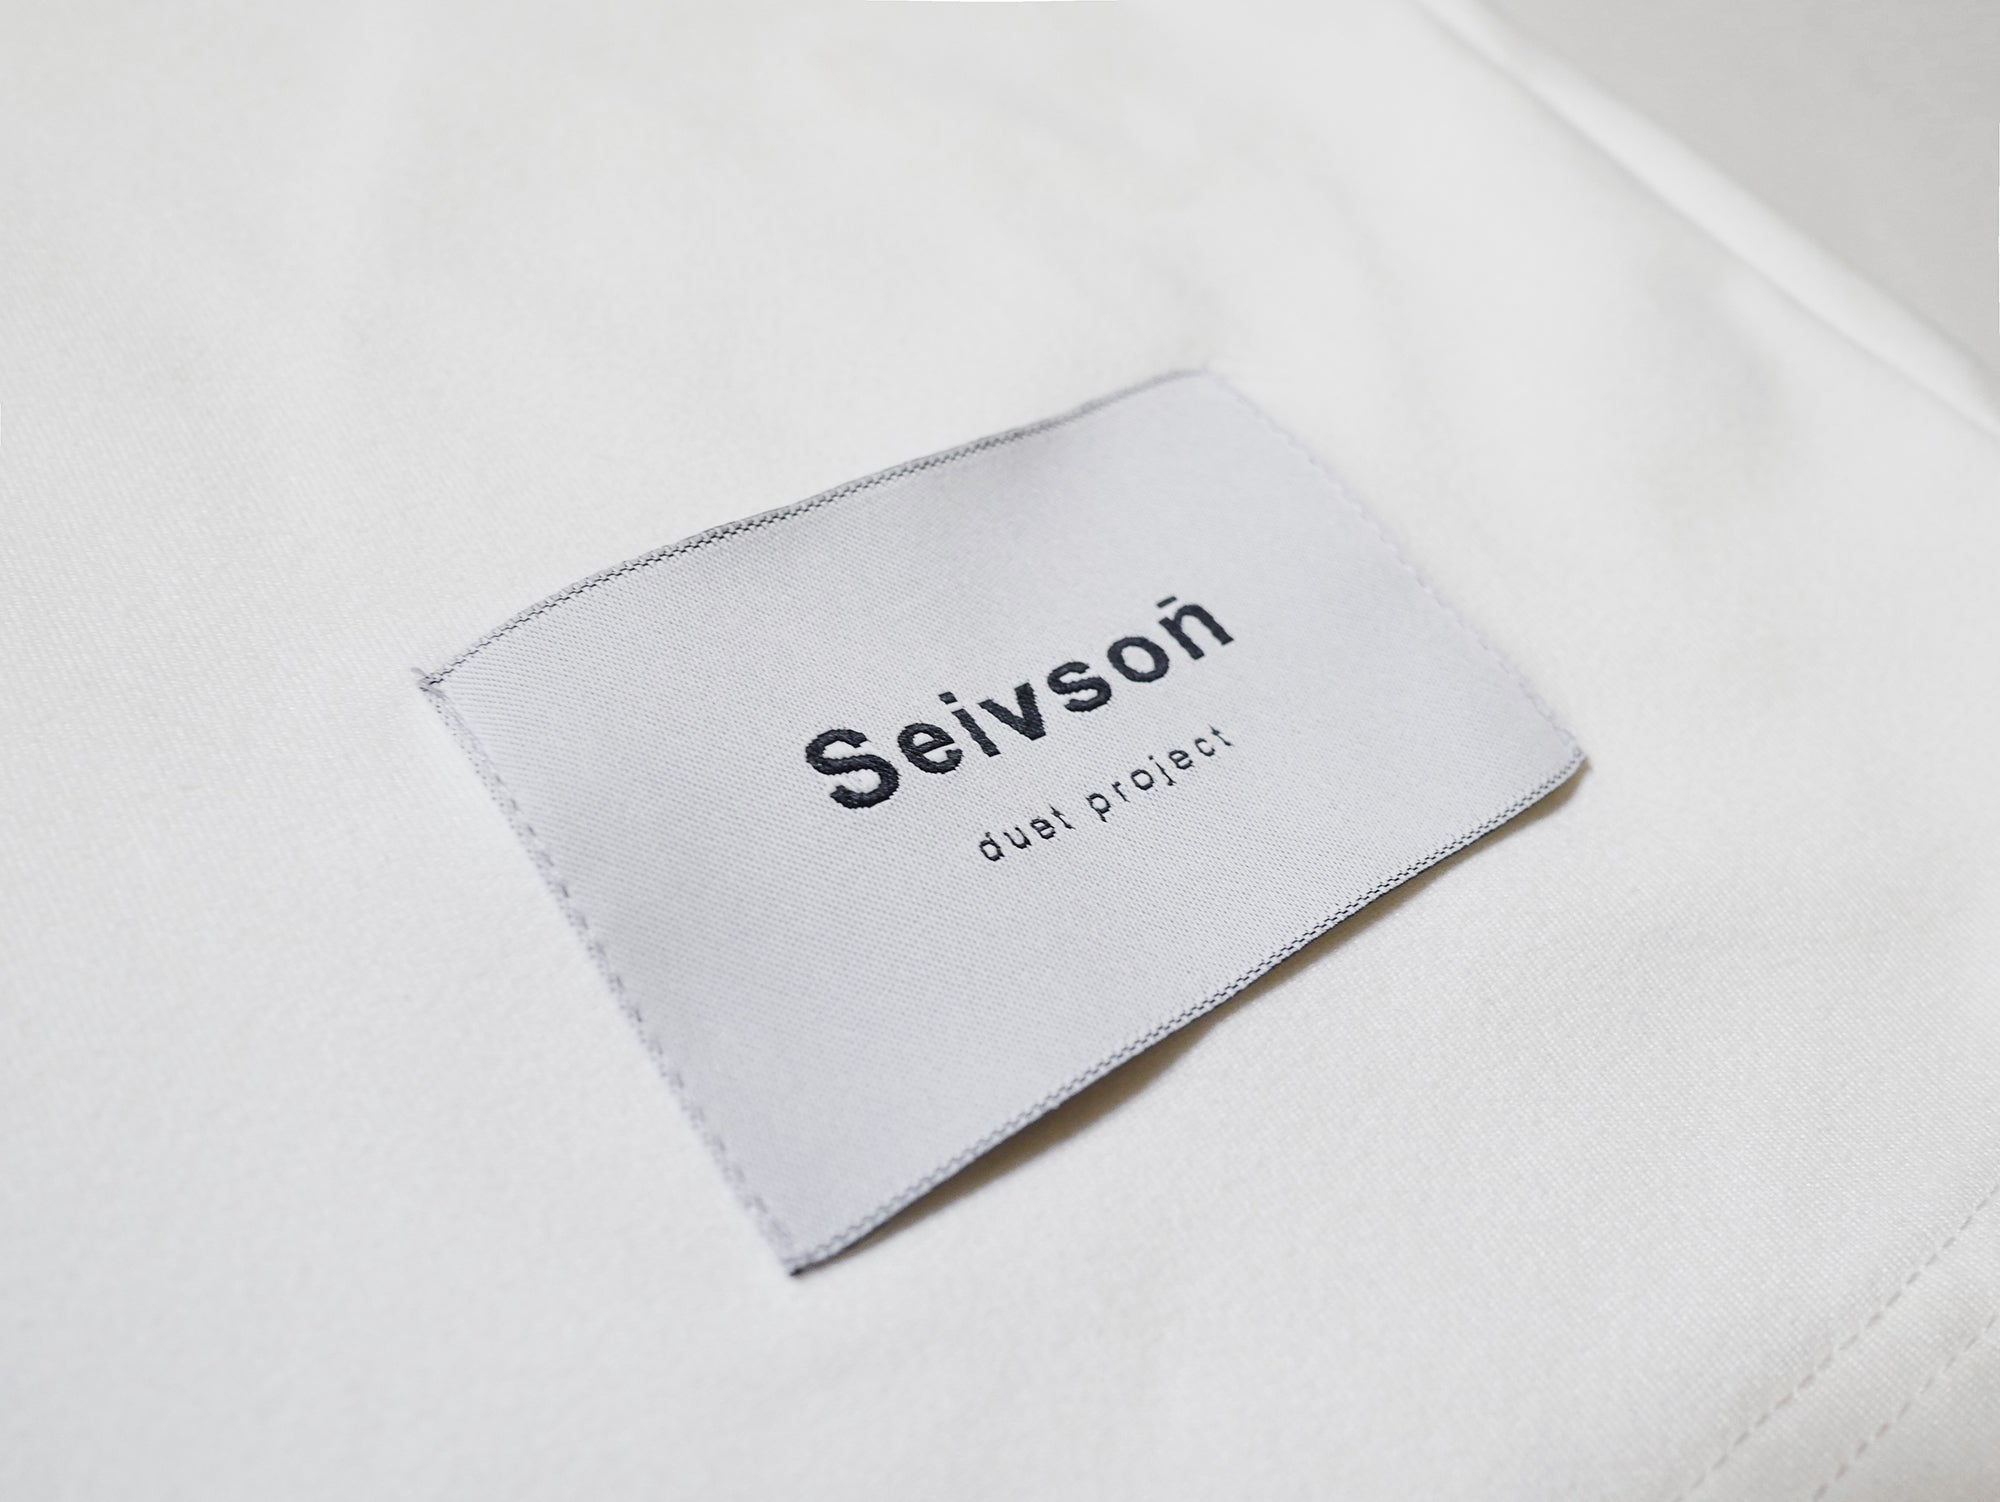 OVER-SIZED<br> SEIVSON <br>T-SHIRT